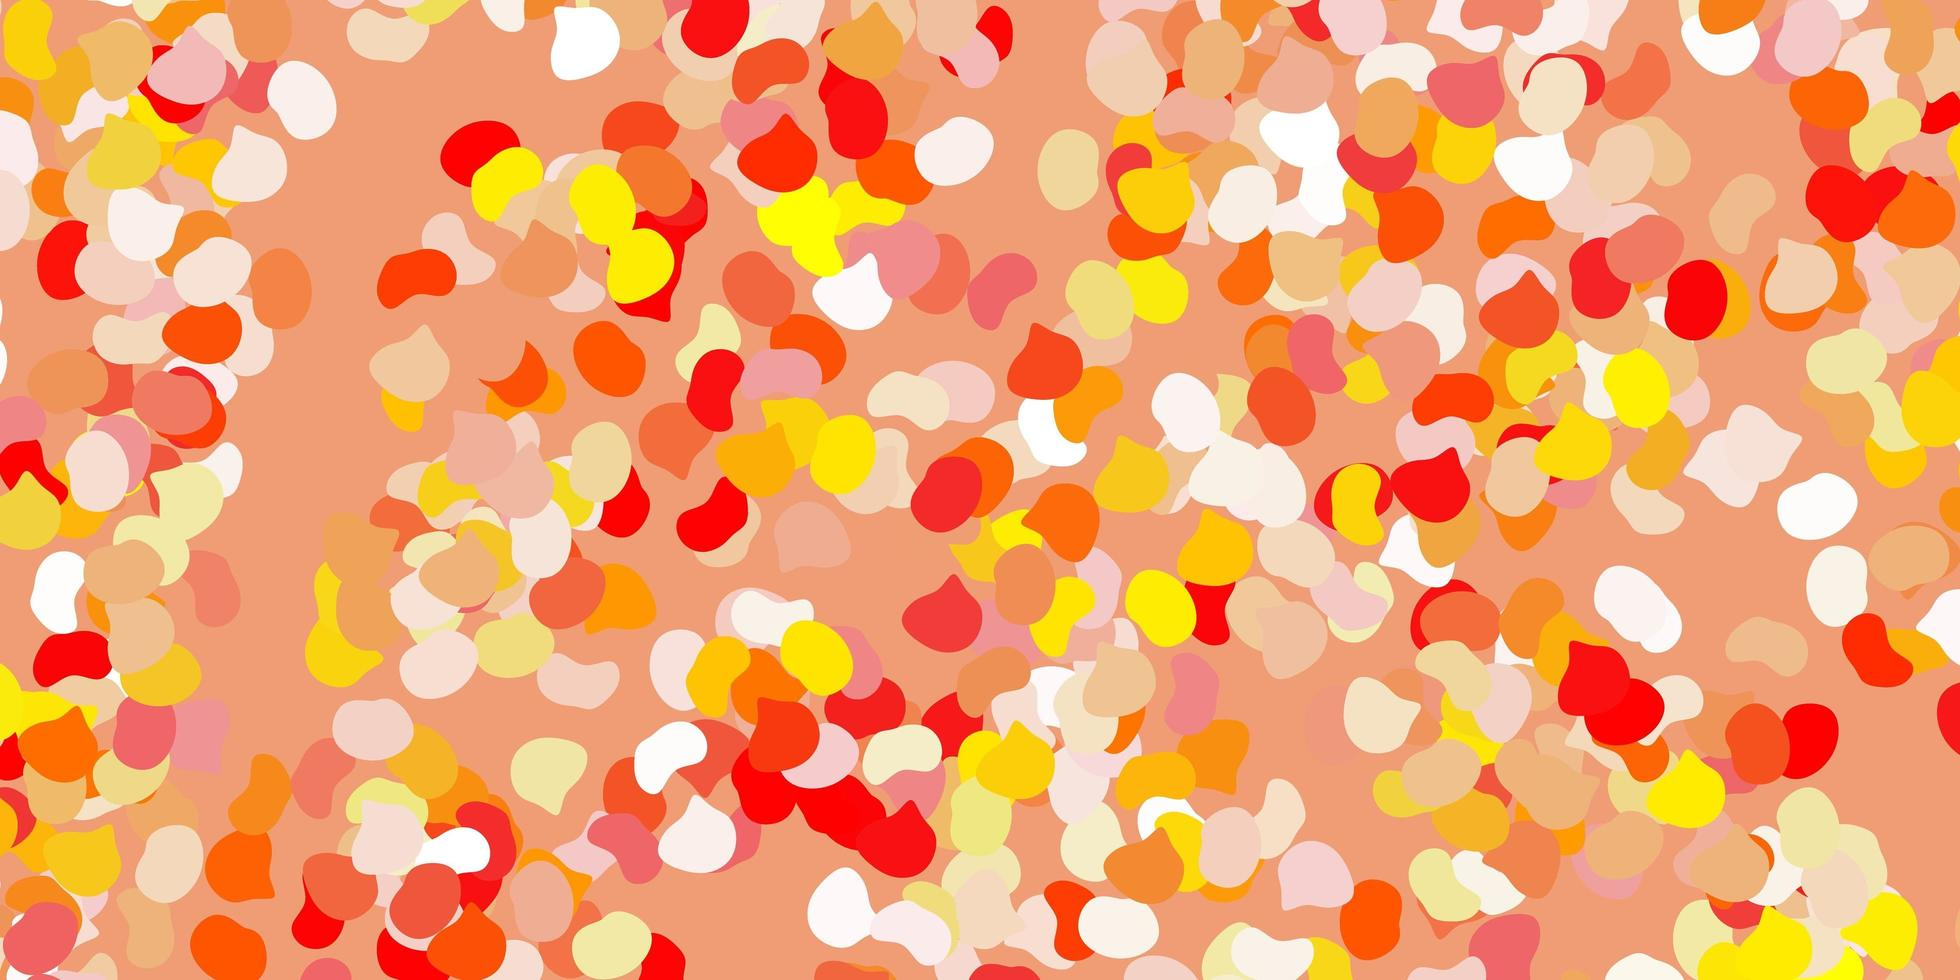 Light red, yellow pattern with abstract shapes. vector